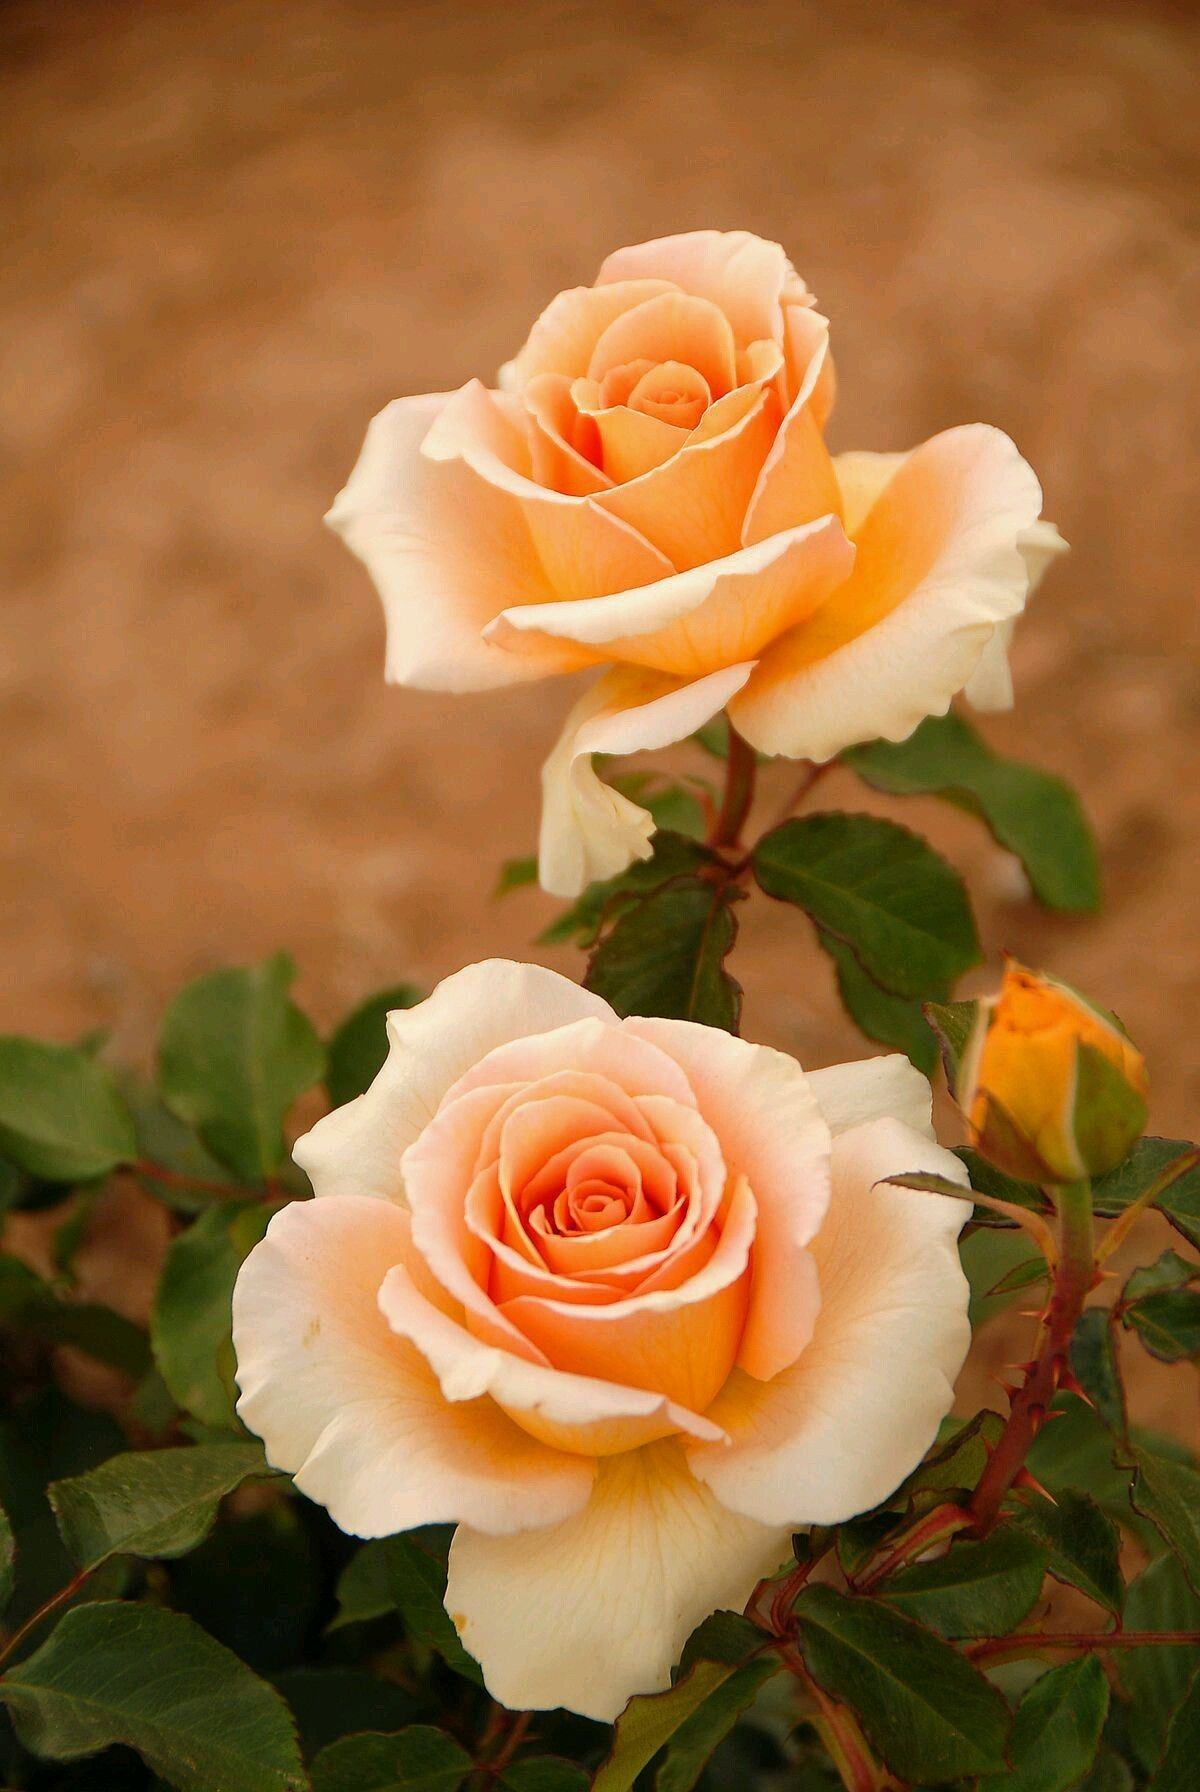 Rose flower, Beautiful roses, Flowers